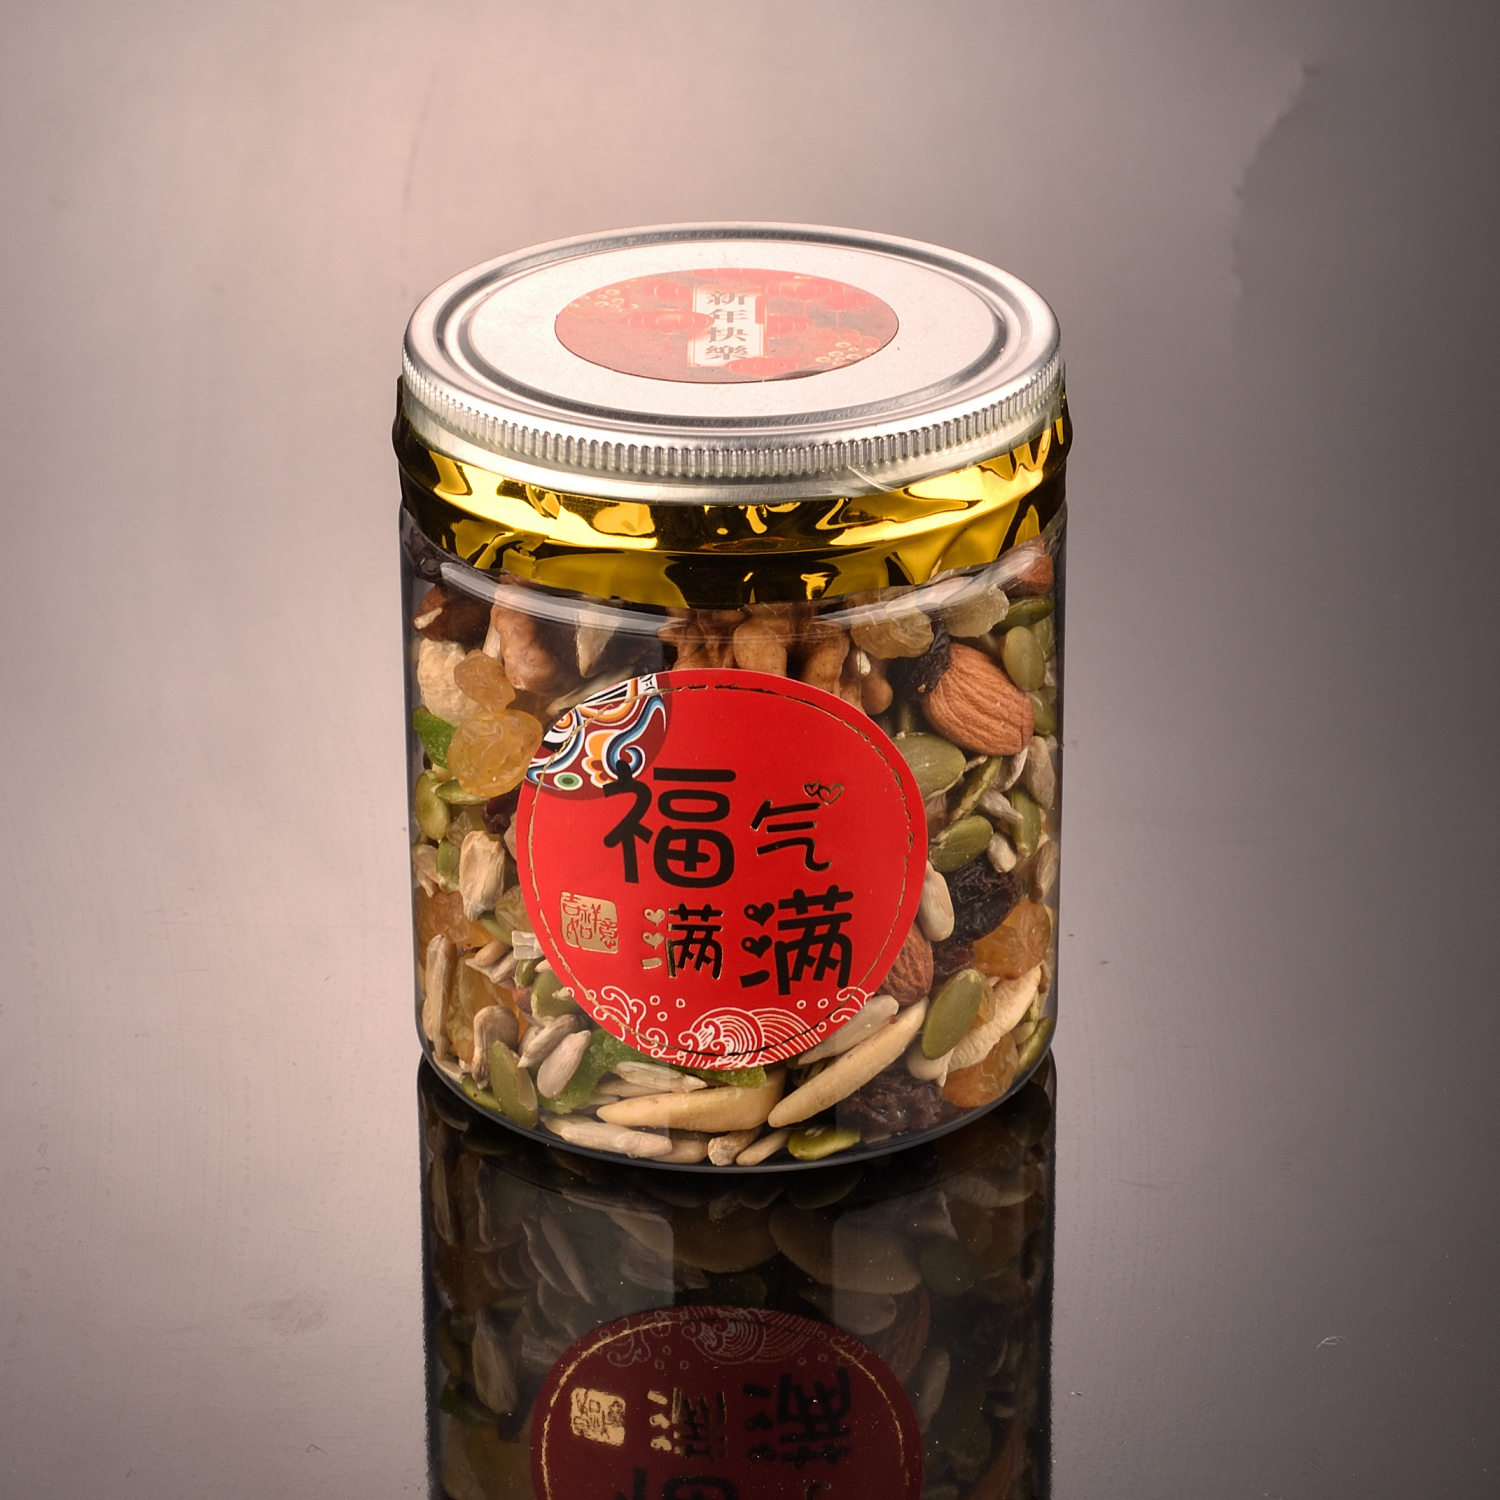 Mixed Dried Fruits & Nuts 什锦干果与坚果 Sell by per bottle (200g,350g)